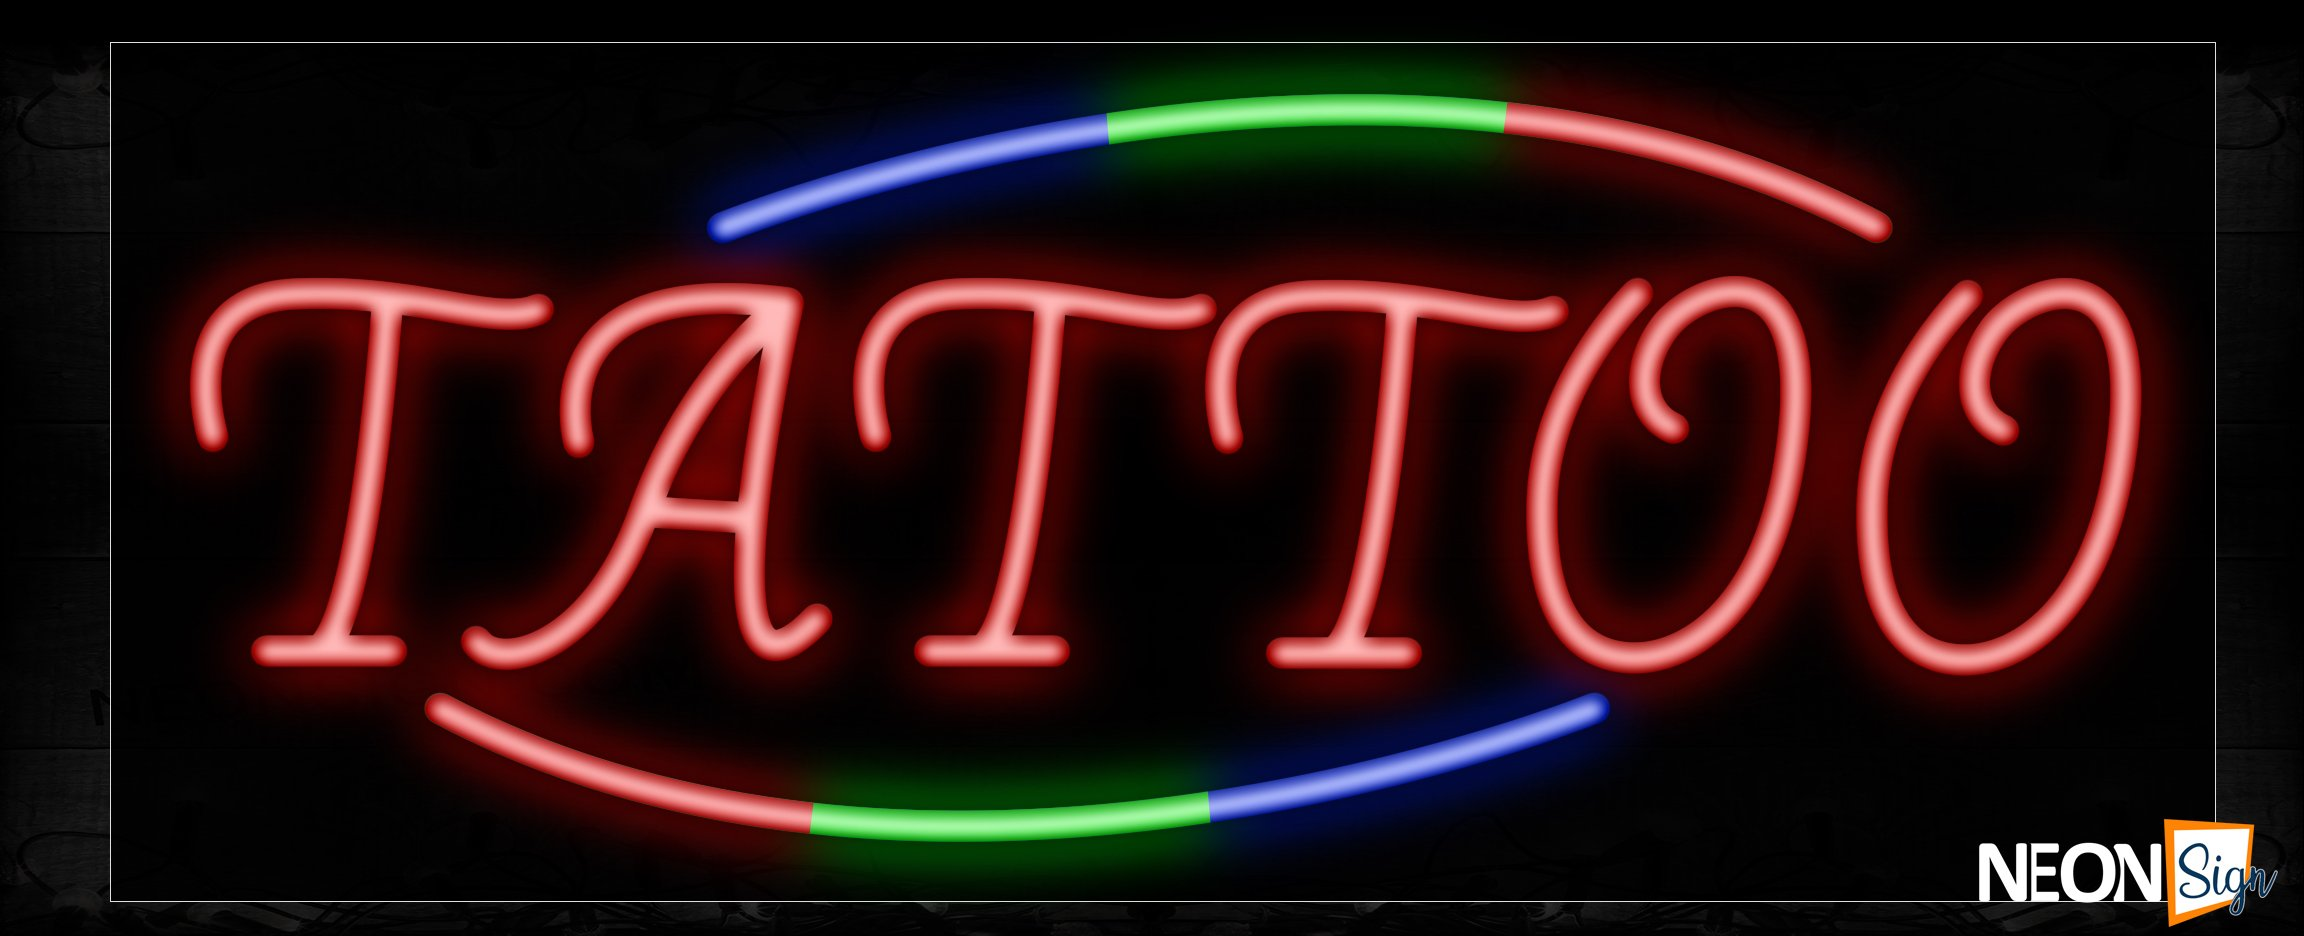 Image of Tattoo With Colorful Arc Border Neon Sign